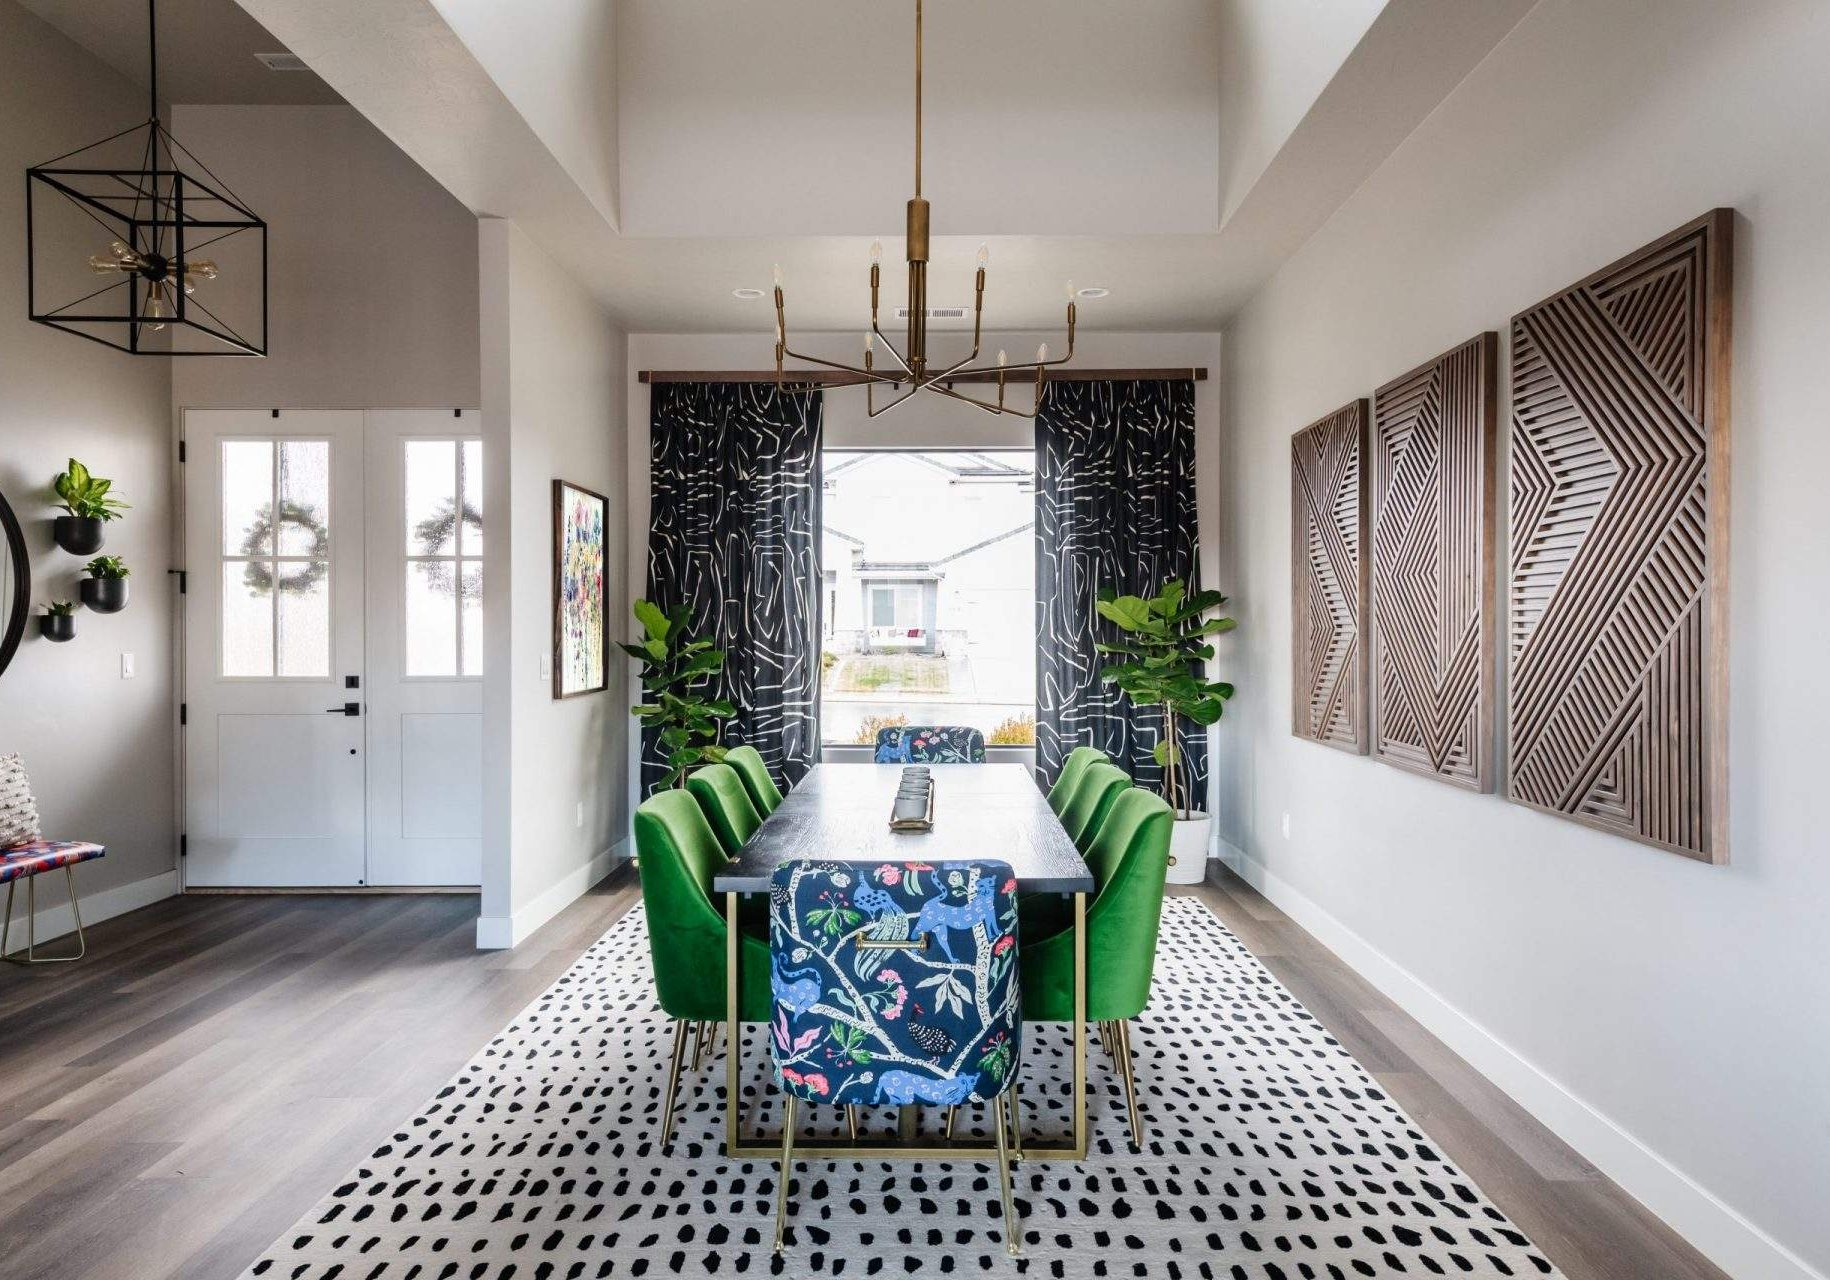 Home Interior Design, Dining Room with Green Upholstered Chairs, Etch Interior Design, Austin, Texas